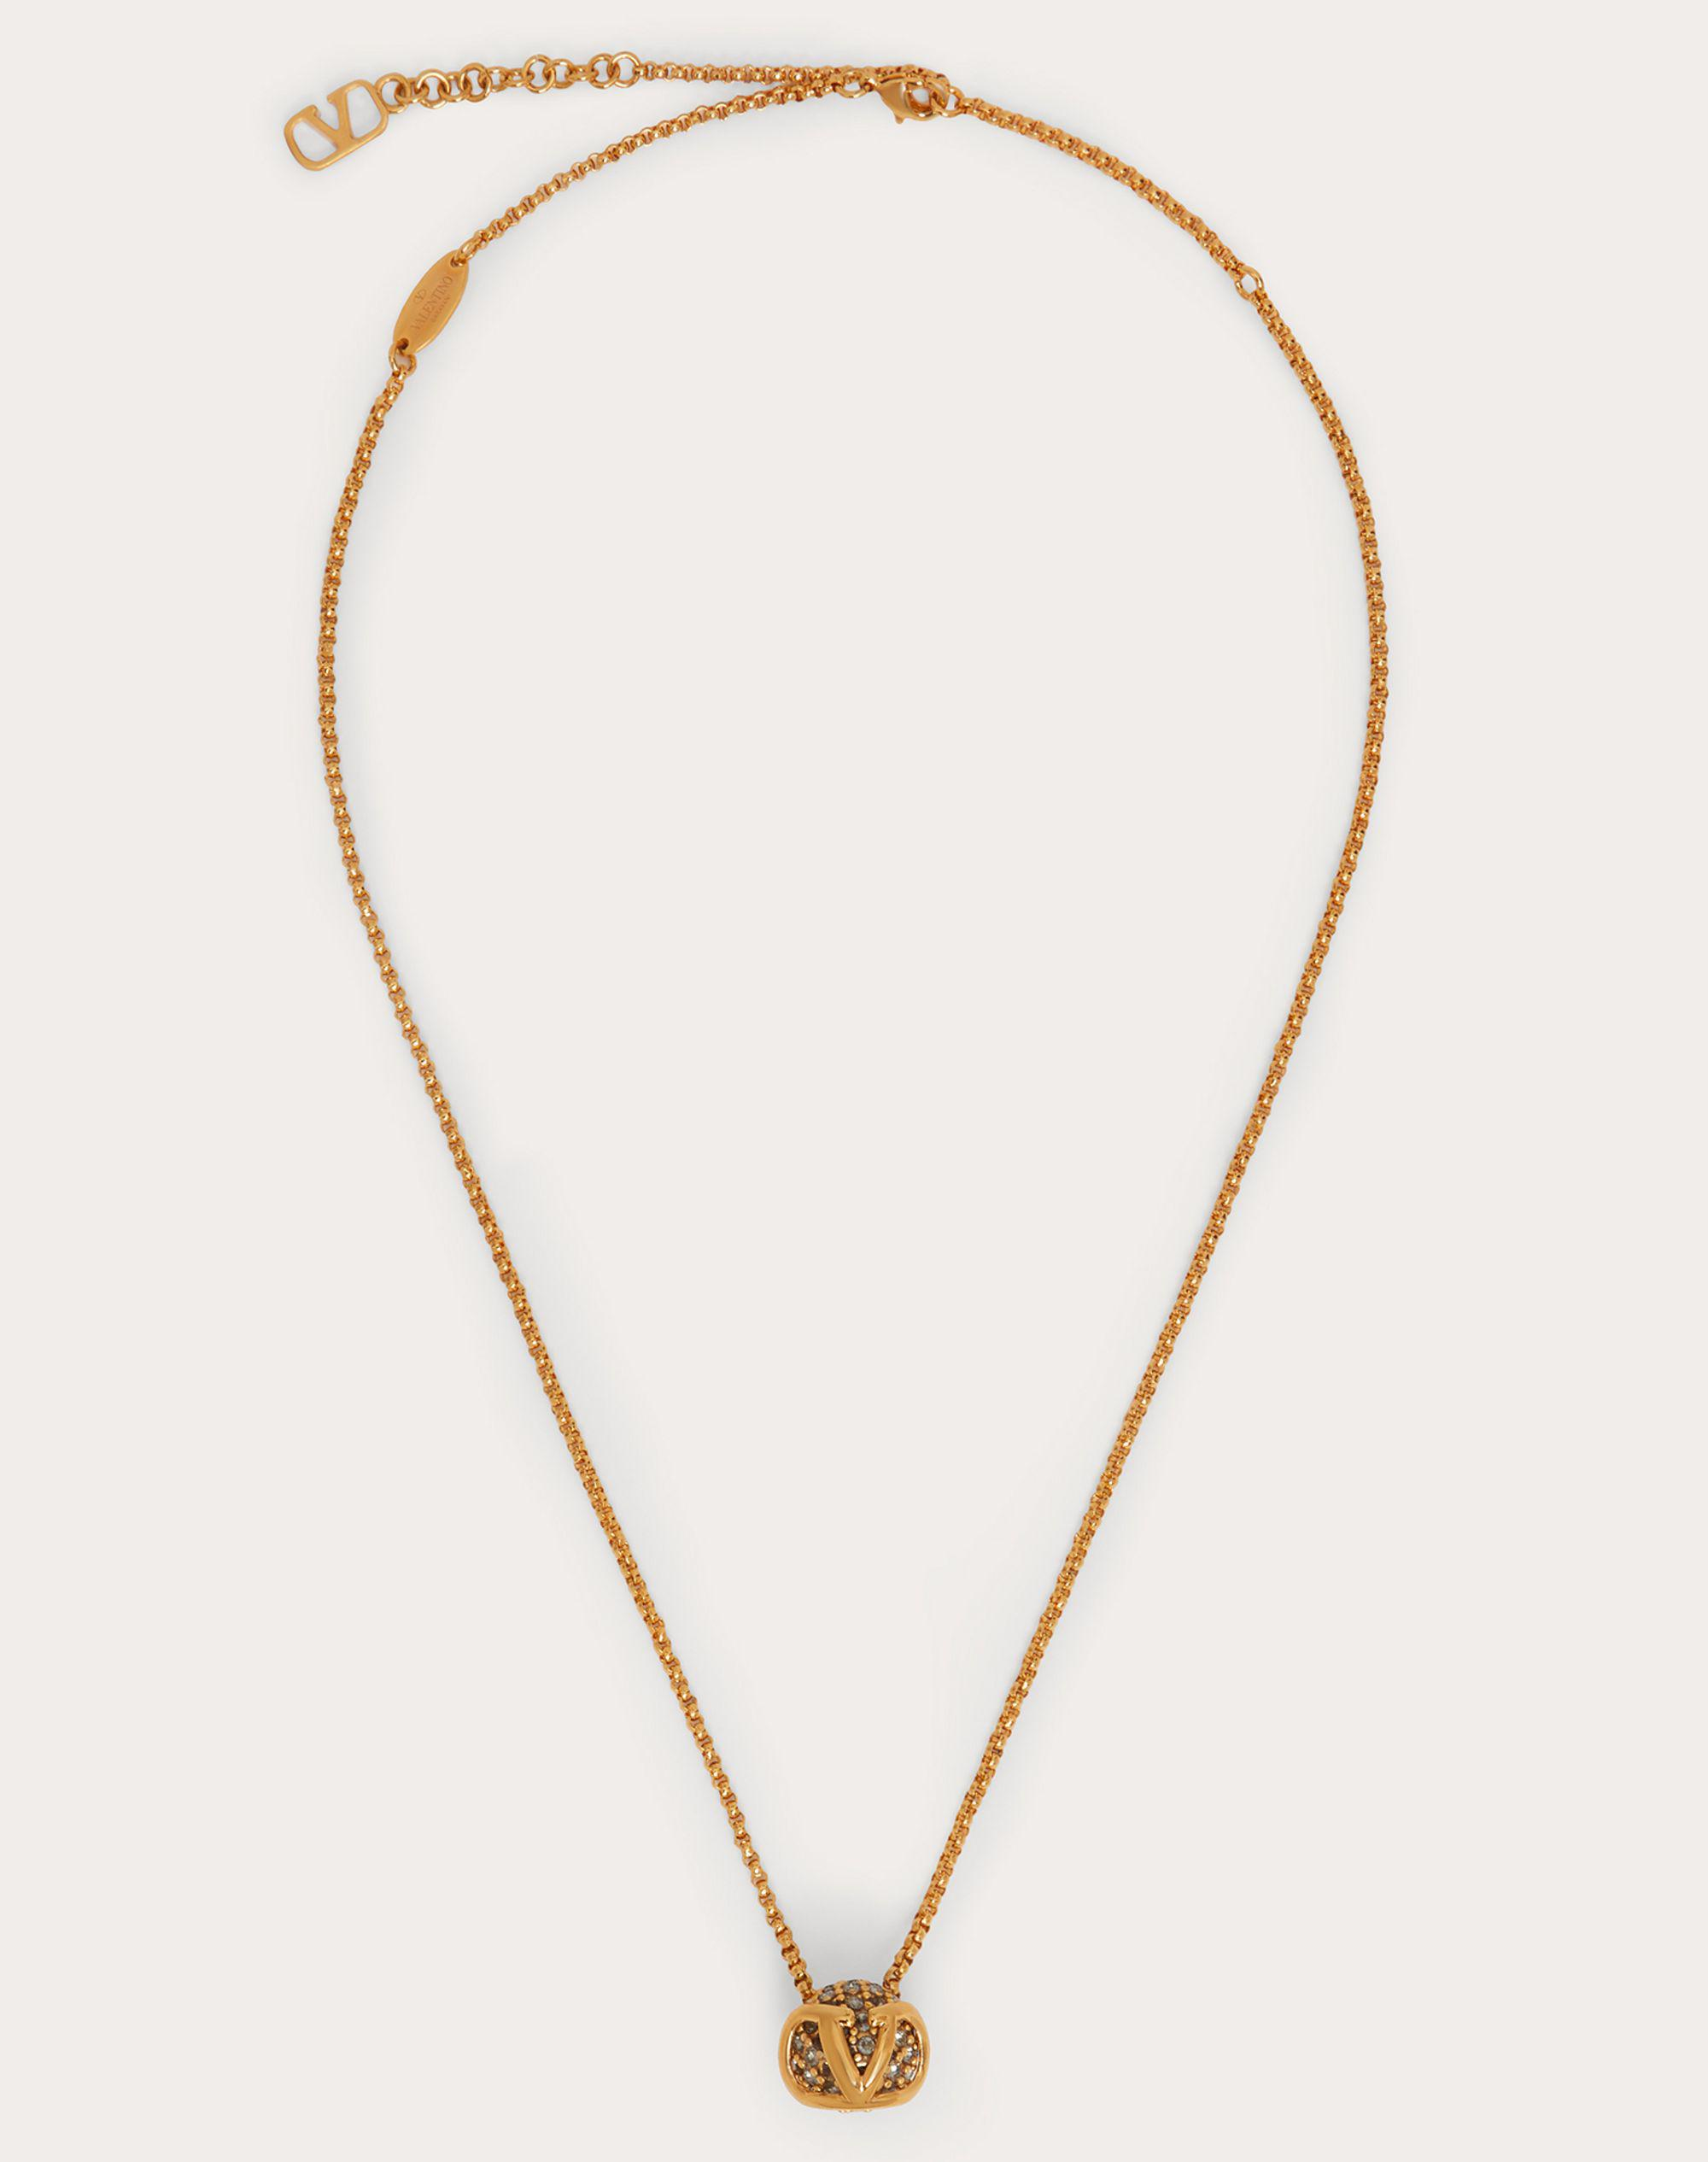 VLogo Signature Metal and Crystal Necklace